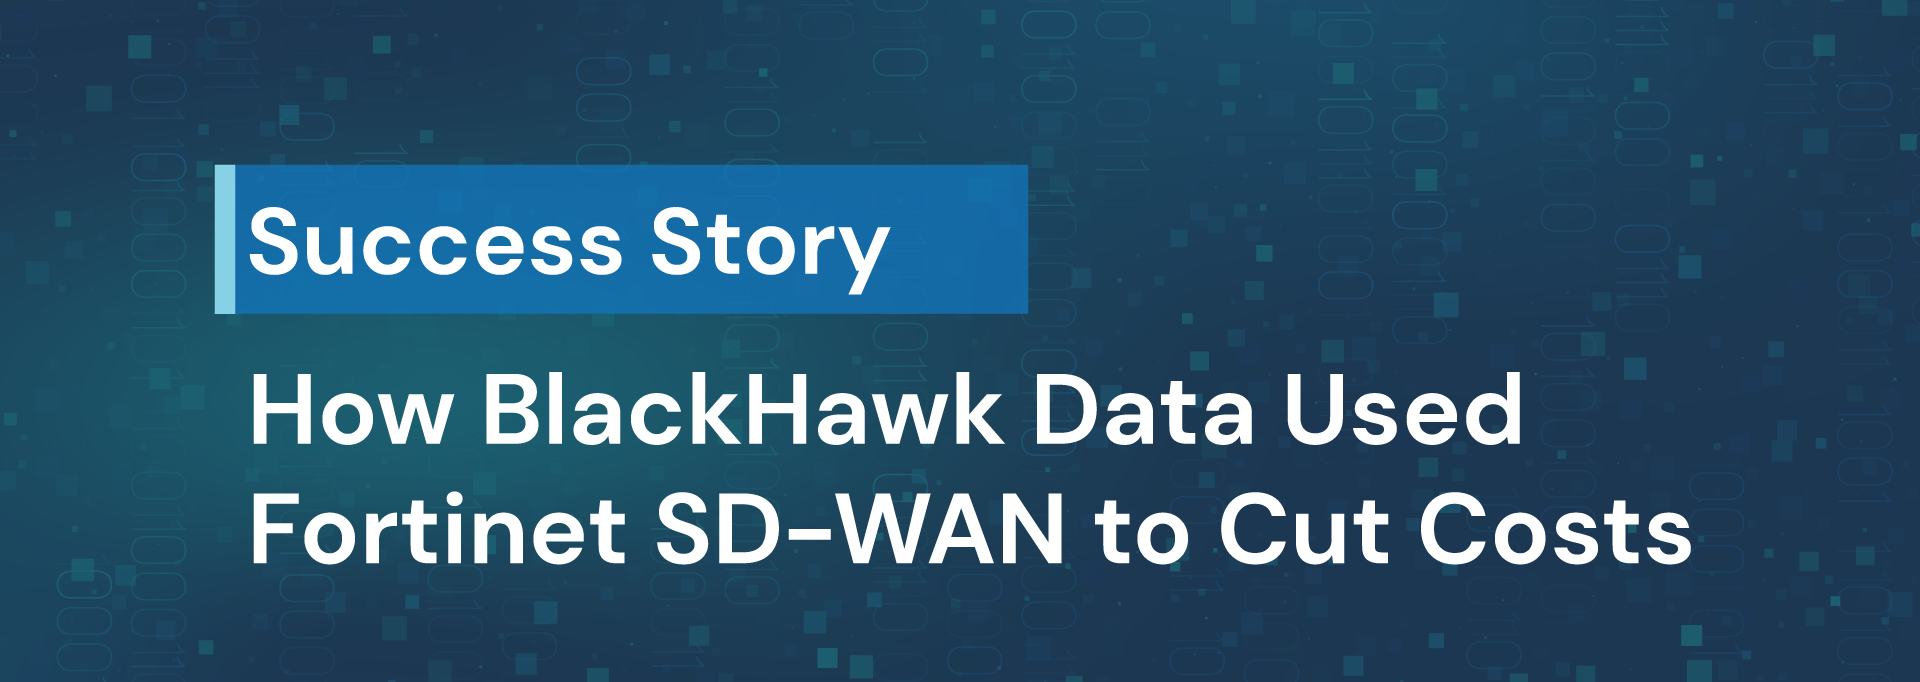 How BlackHawk Data used Fortinet SD-WAN to Cut Costs